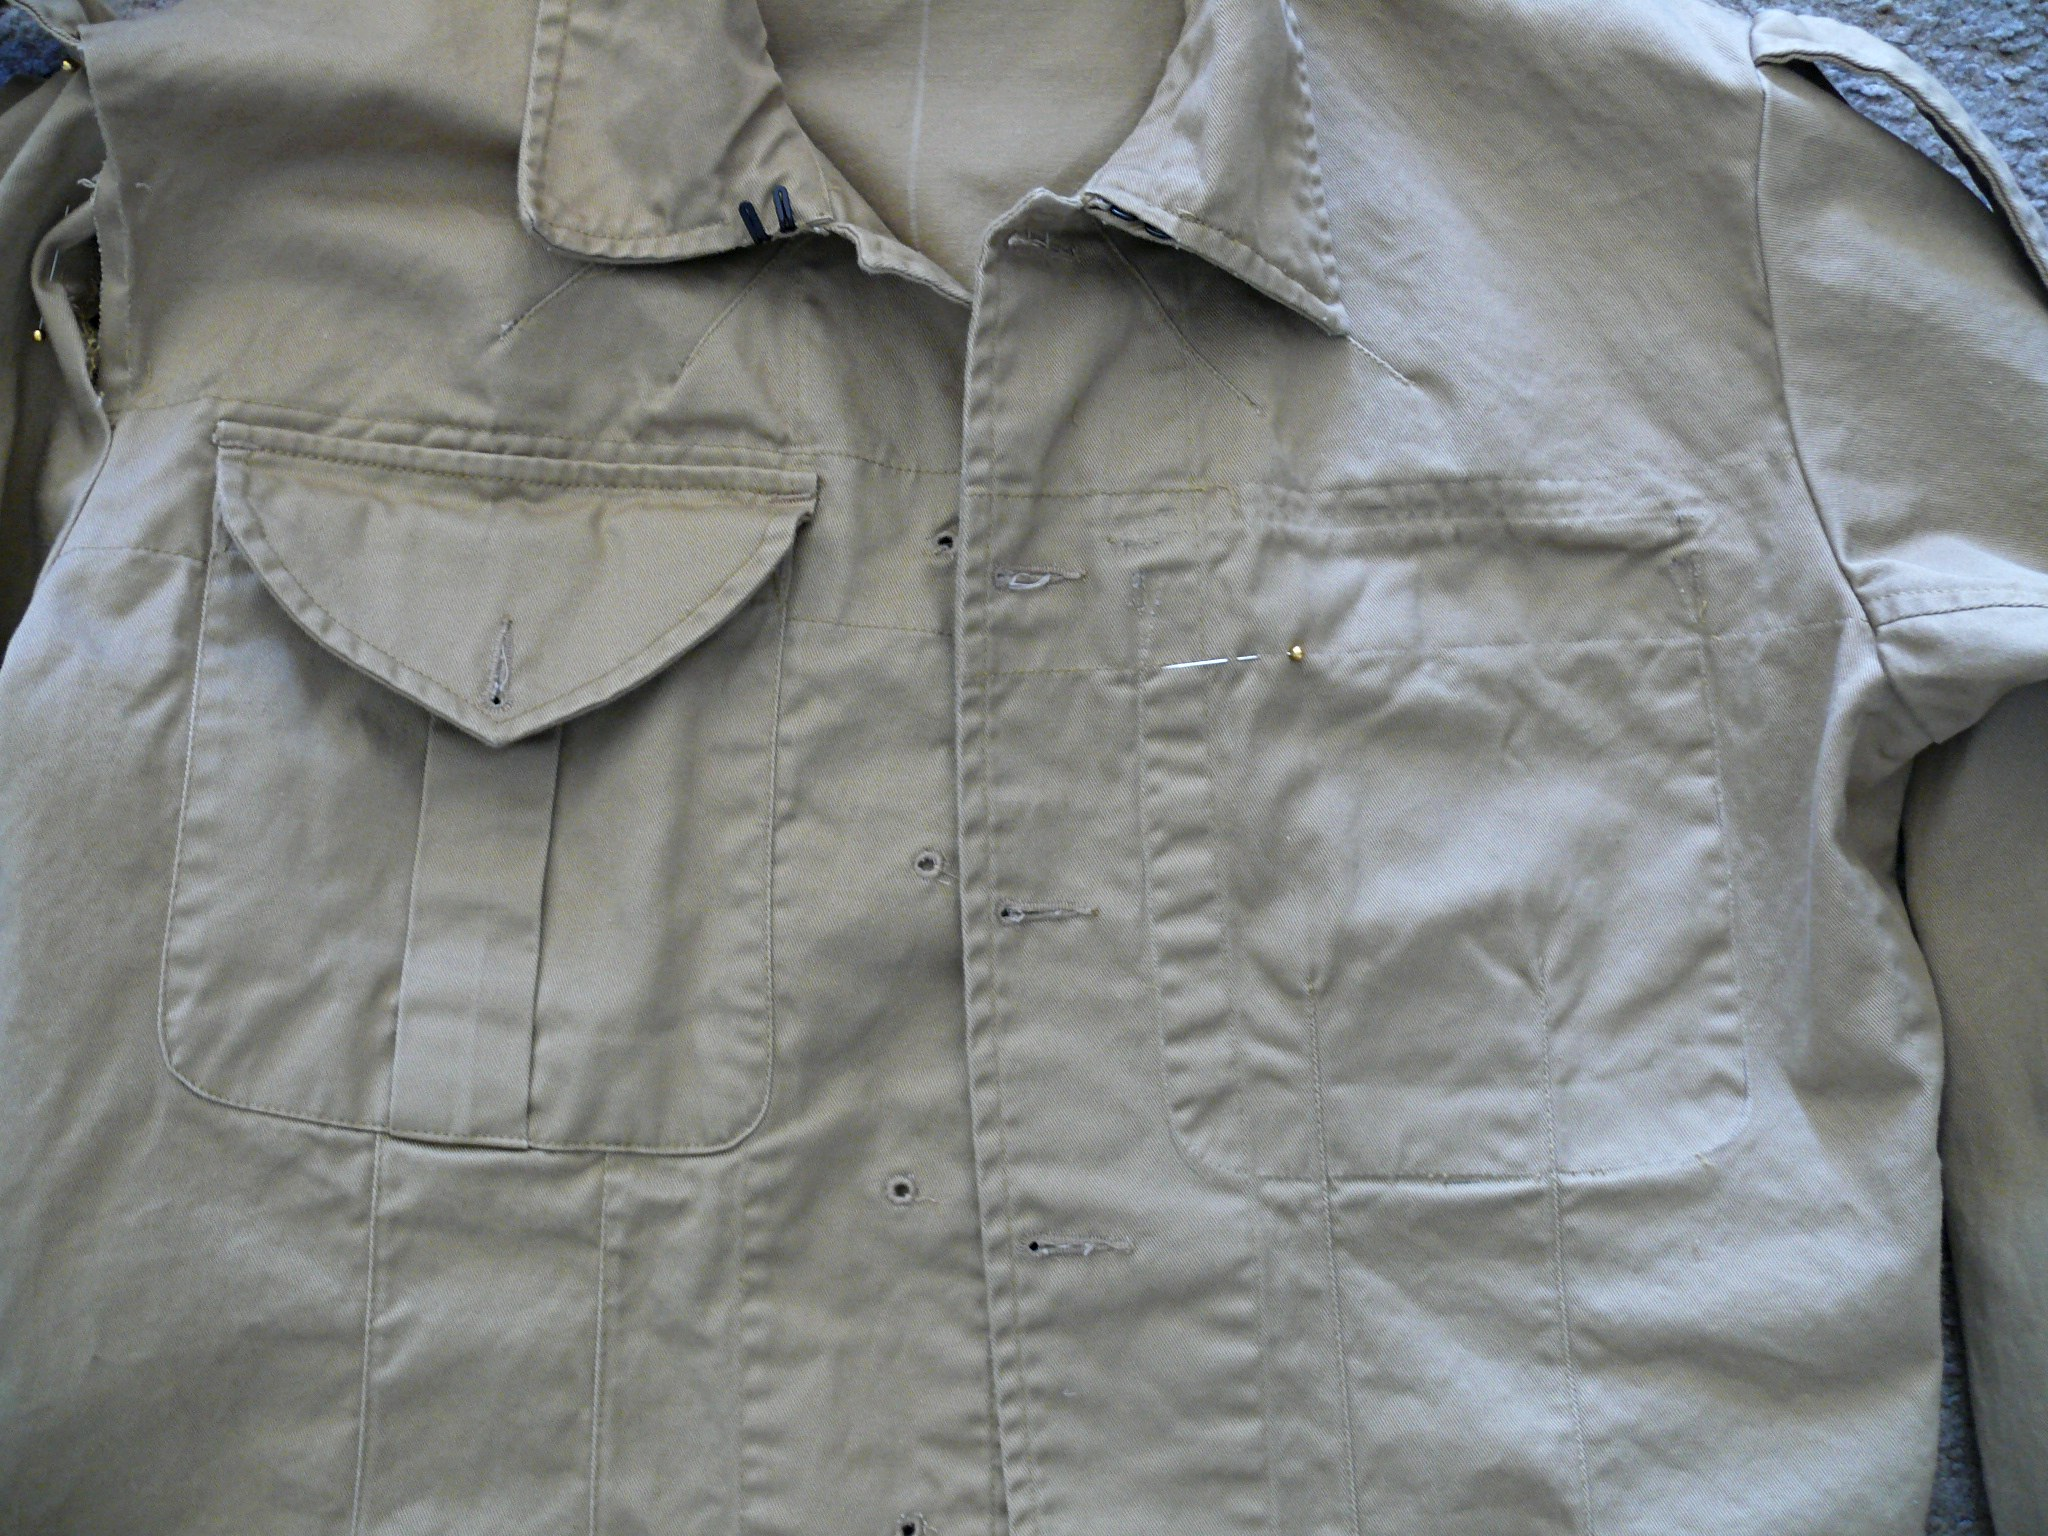 In this photo, the pin marks the top edge of the new pocket position.